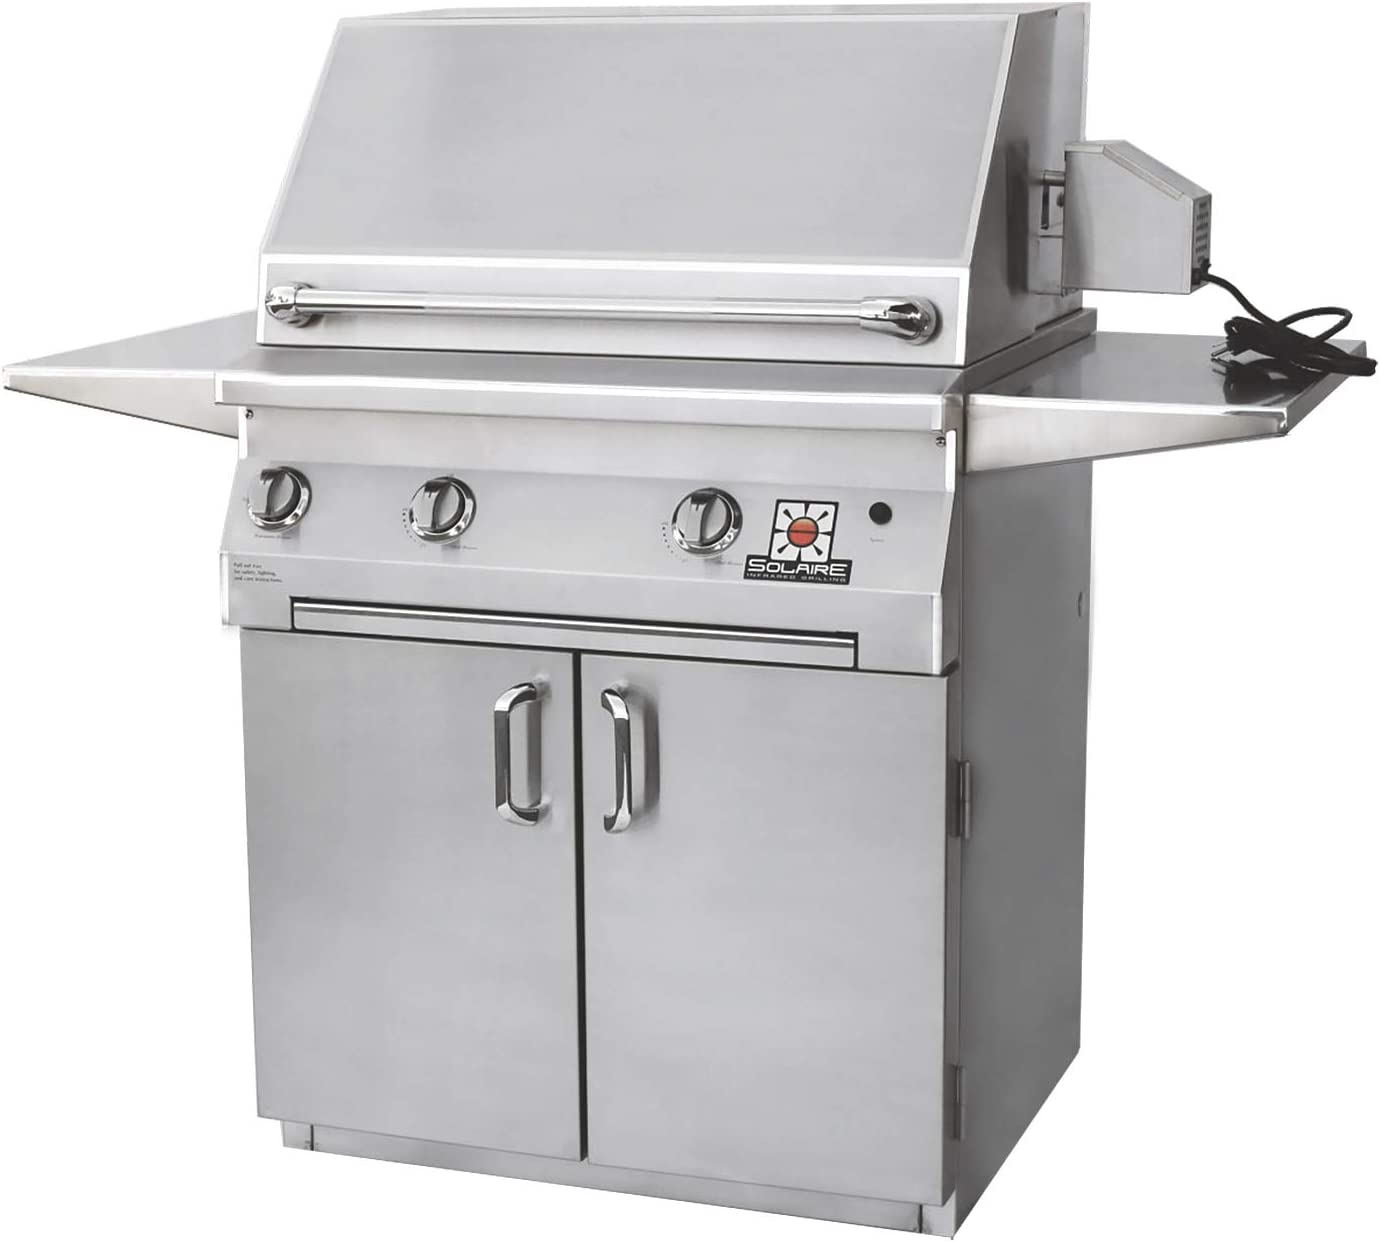 Solaire Deluxe Convection Freestanding Grill Popularity with safety Rotisserie SO